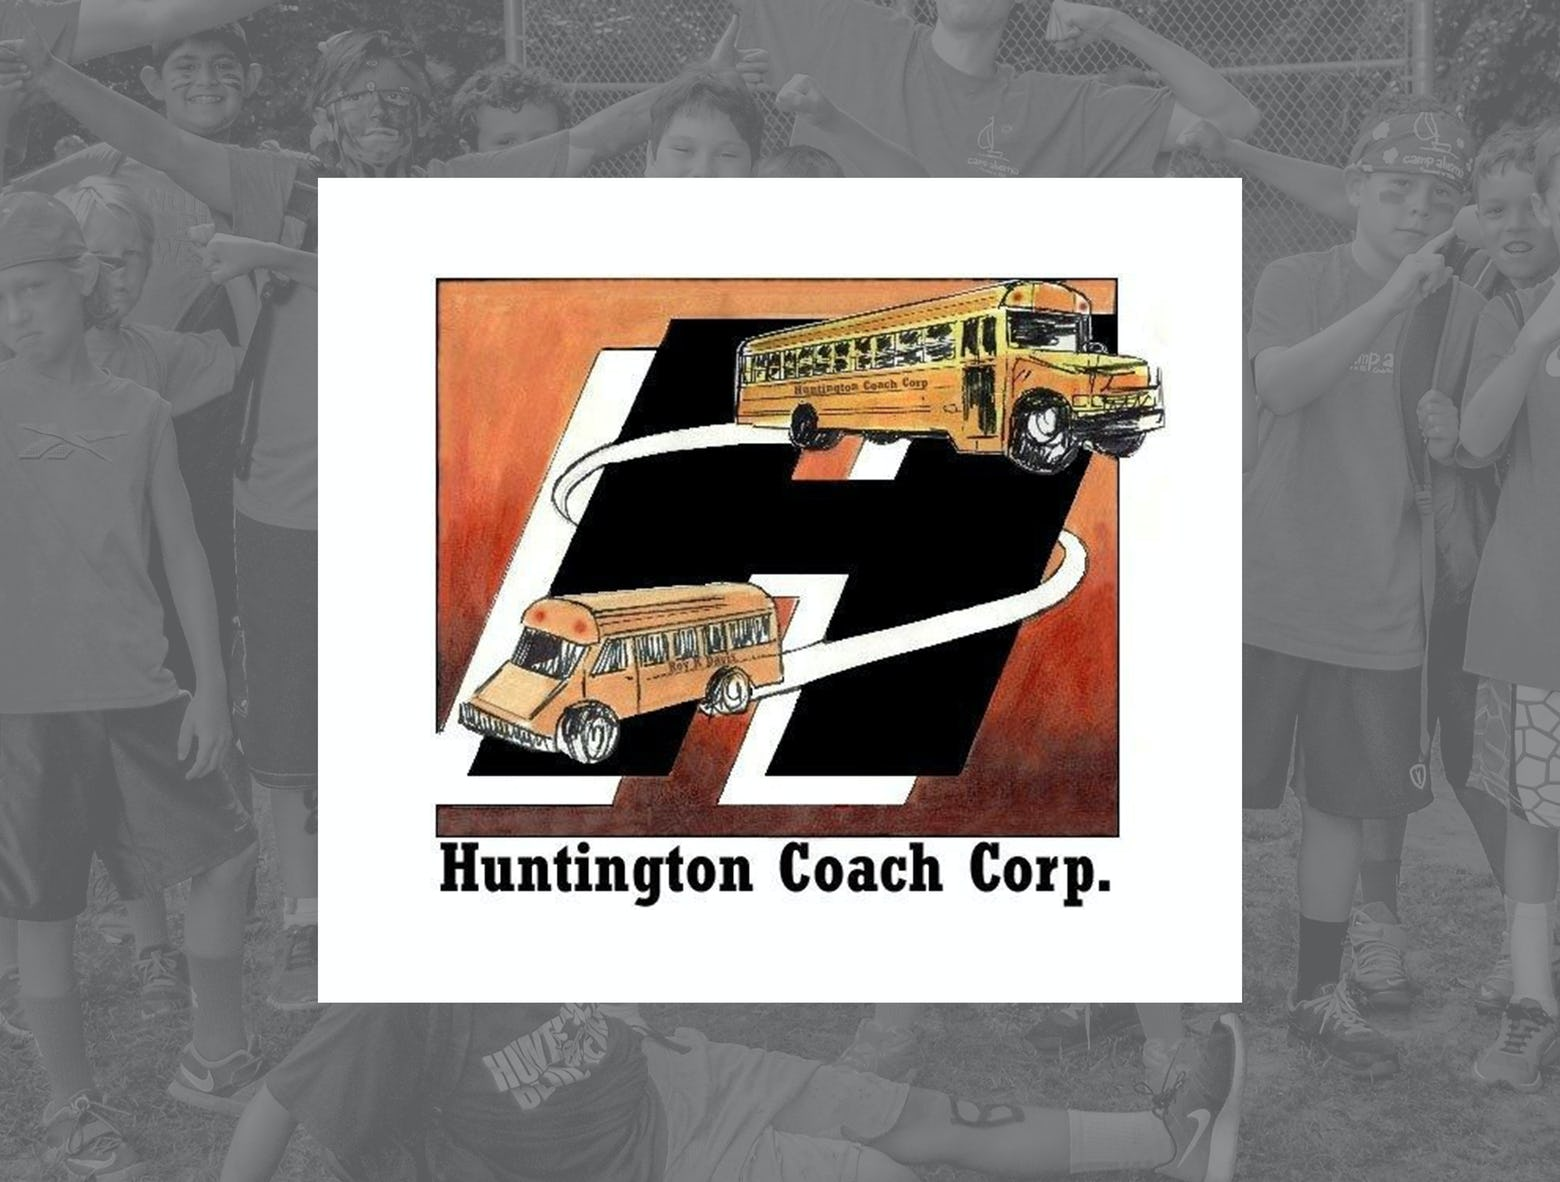 Huntington Coach